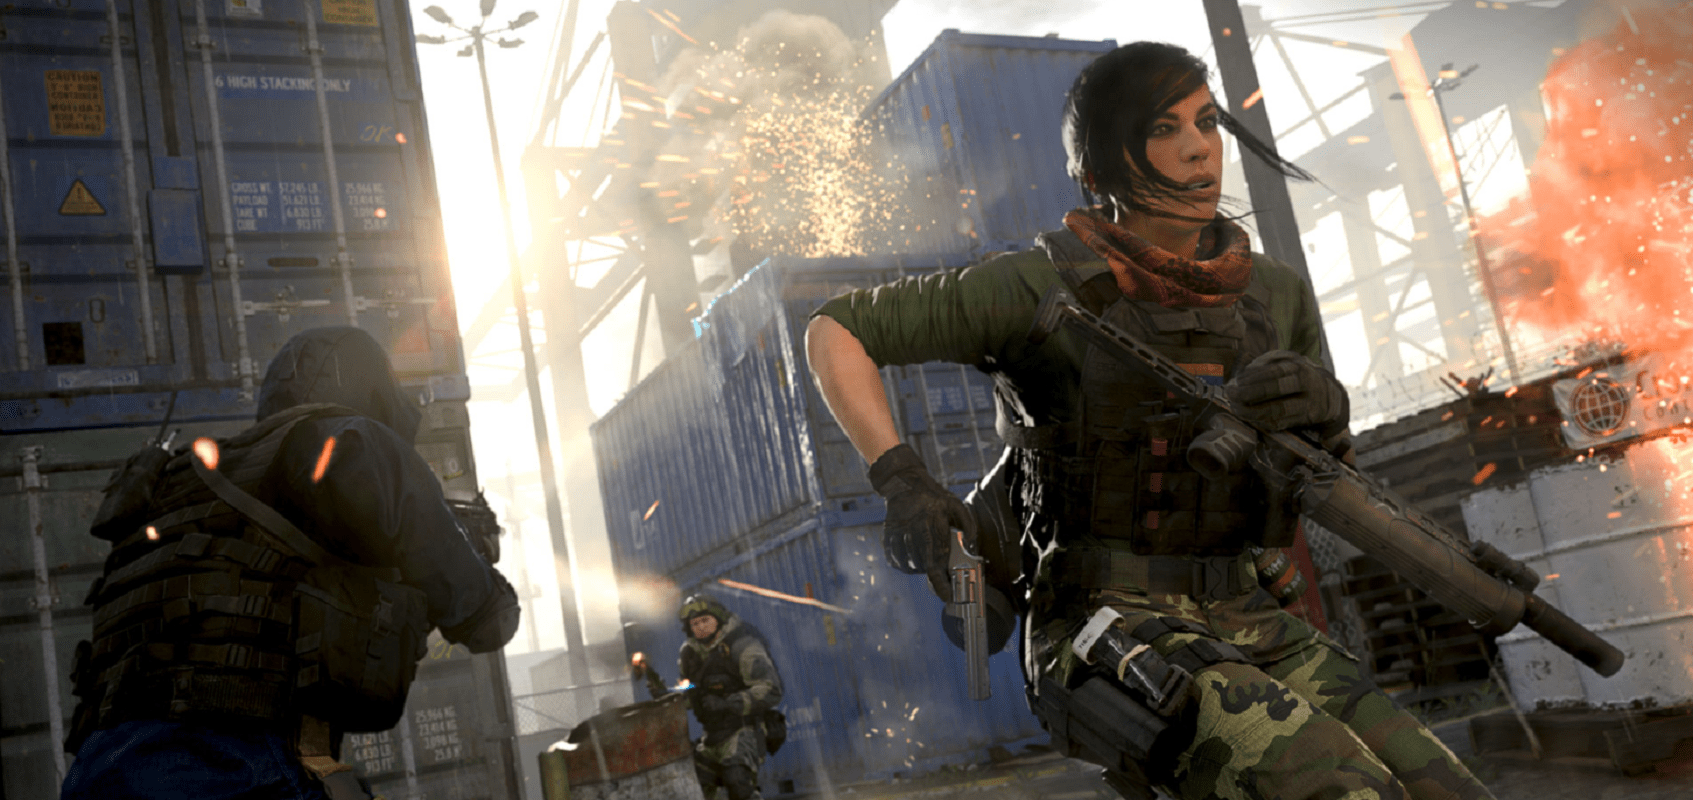 Rumors Of Netflix Looking At Getting Into Gaming Increase While Activision Sues